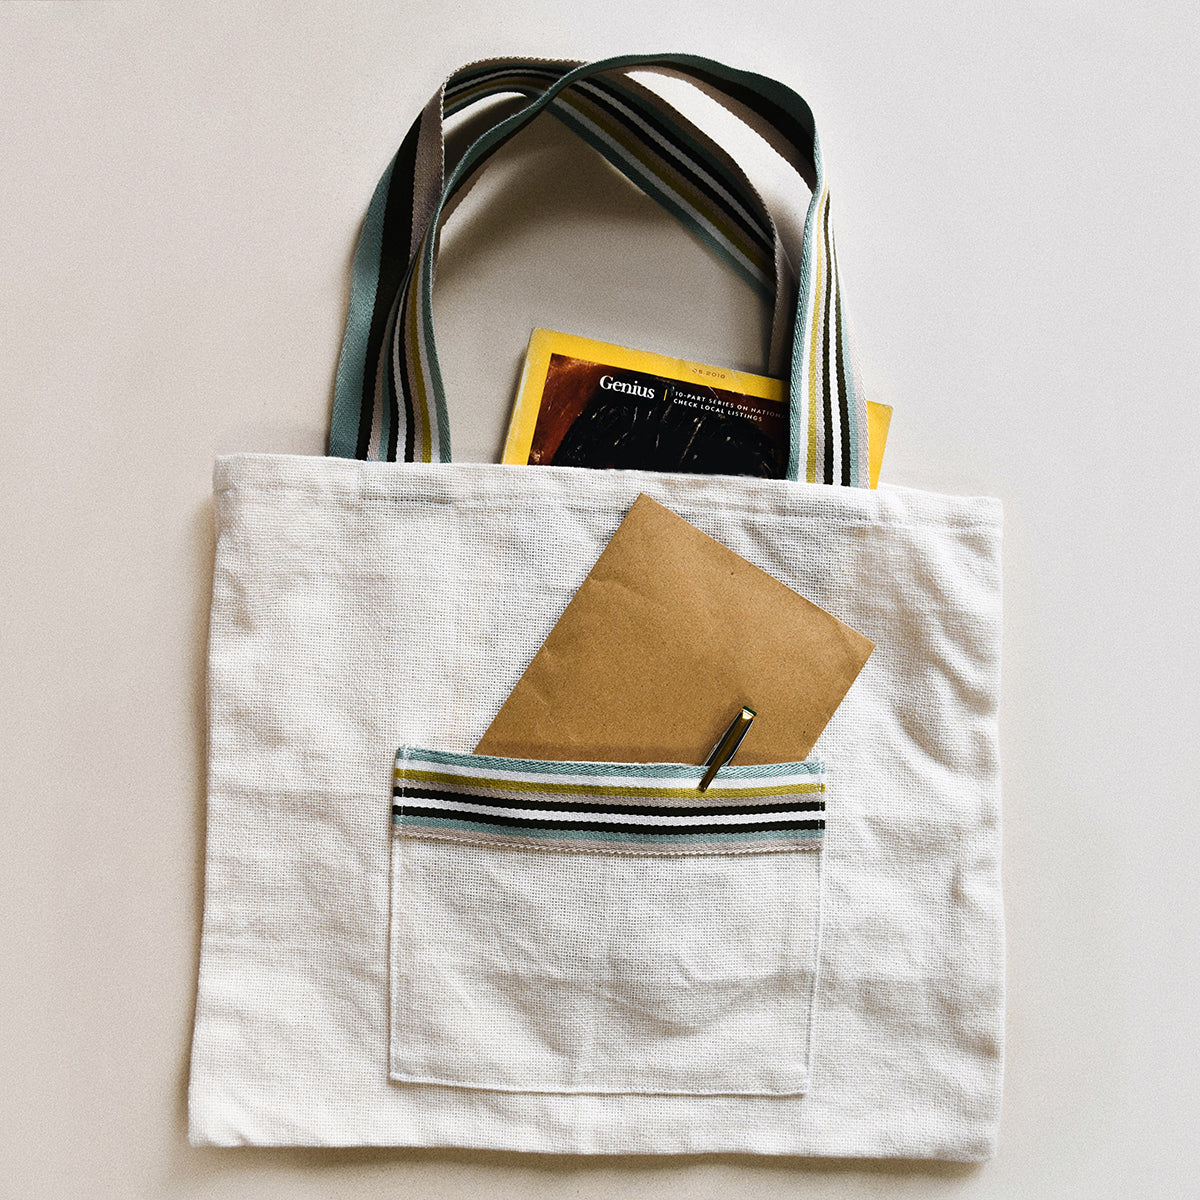 Tote bag with outer pocket | Sewing project © Singer® Hong Kong